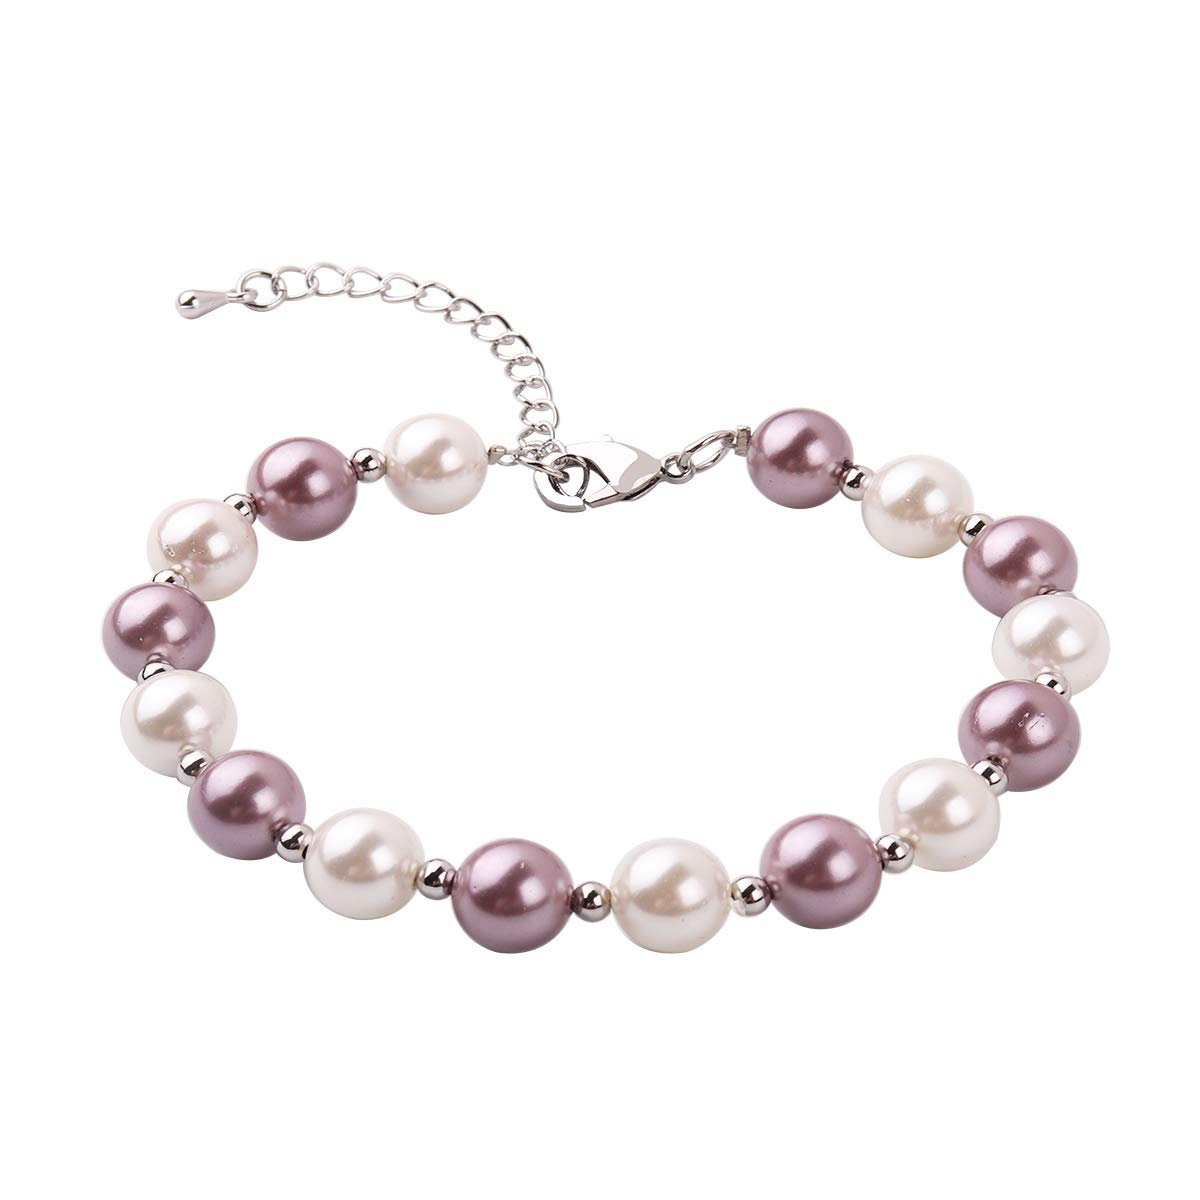 RUNXINTD Pearl Bracelet 8mm-9mm Round Pink White Pearl Bracelet in 3 Colors Wedding Jewelry (White+Purple Pearl)